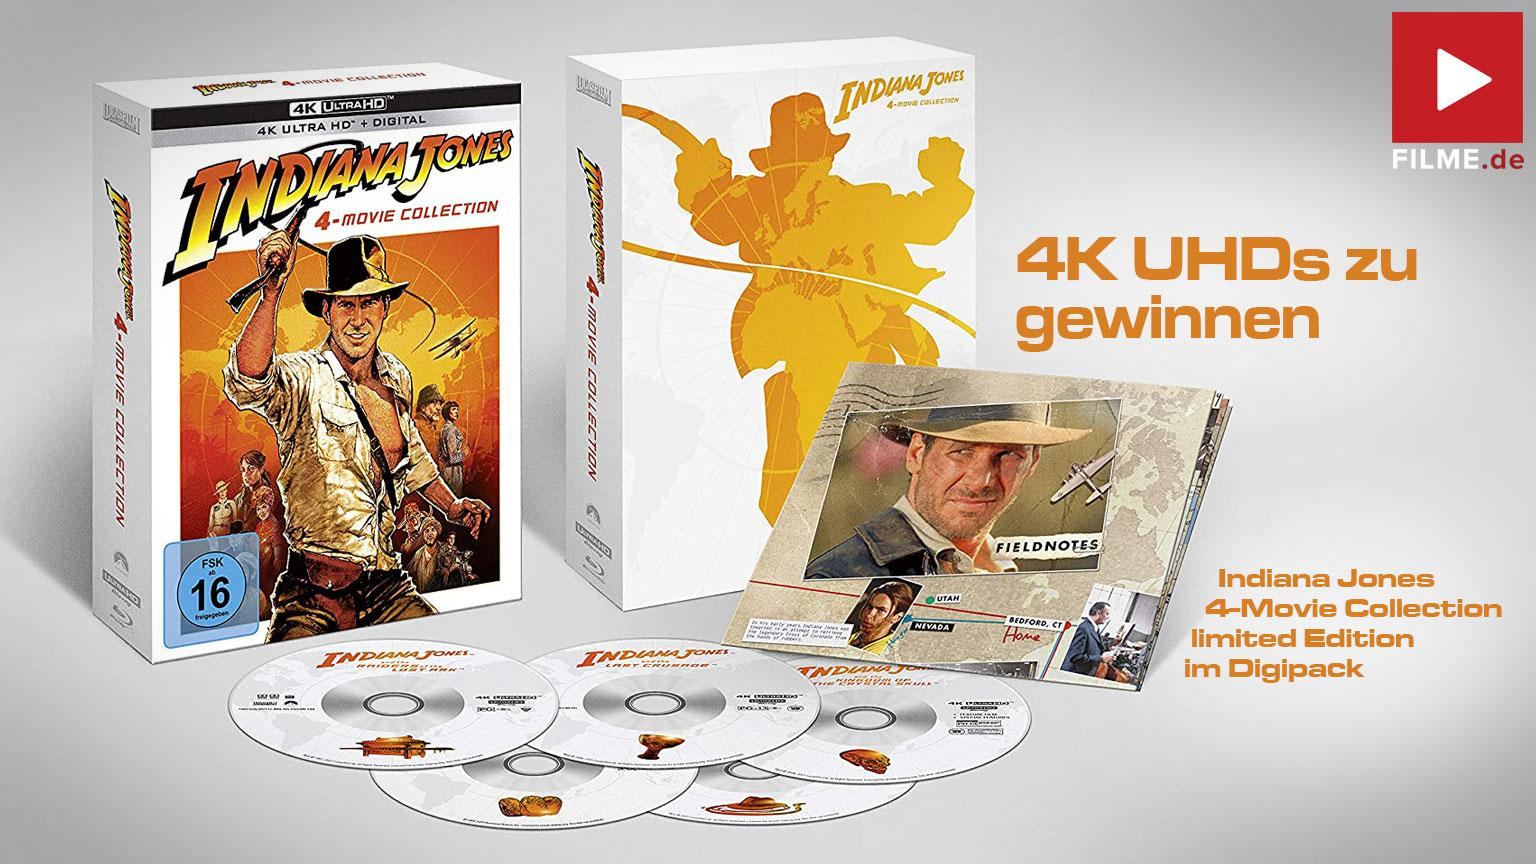 Indiana Jones – 4-Movie Collection als 4K UHD Digipak Gewinnspiel gewinnen Artikelbild